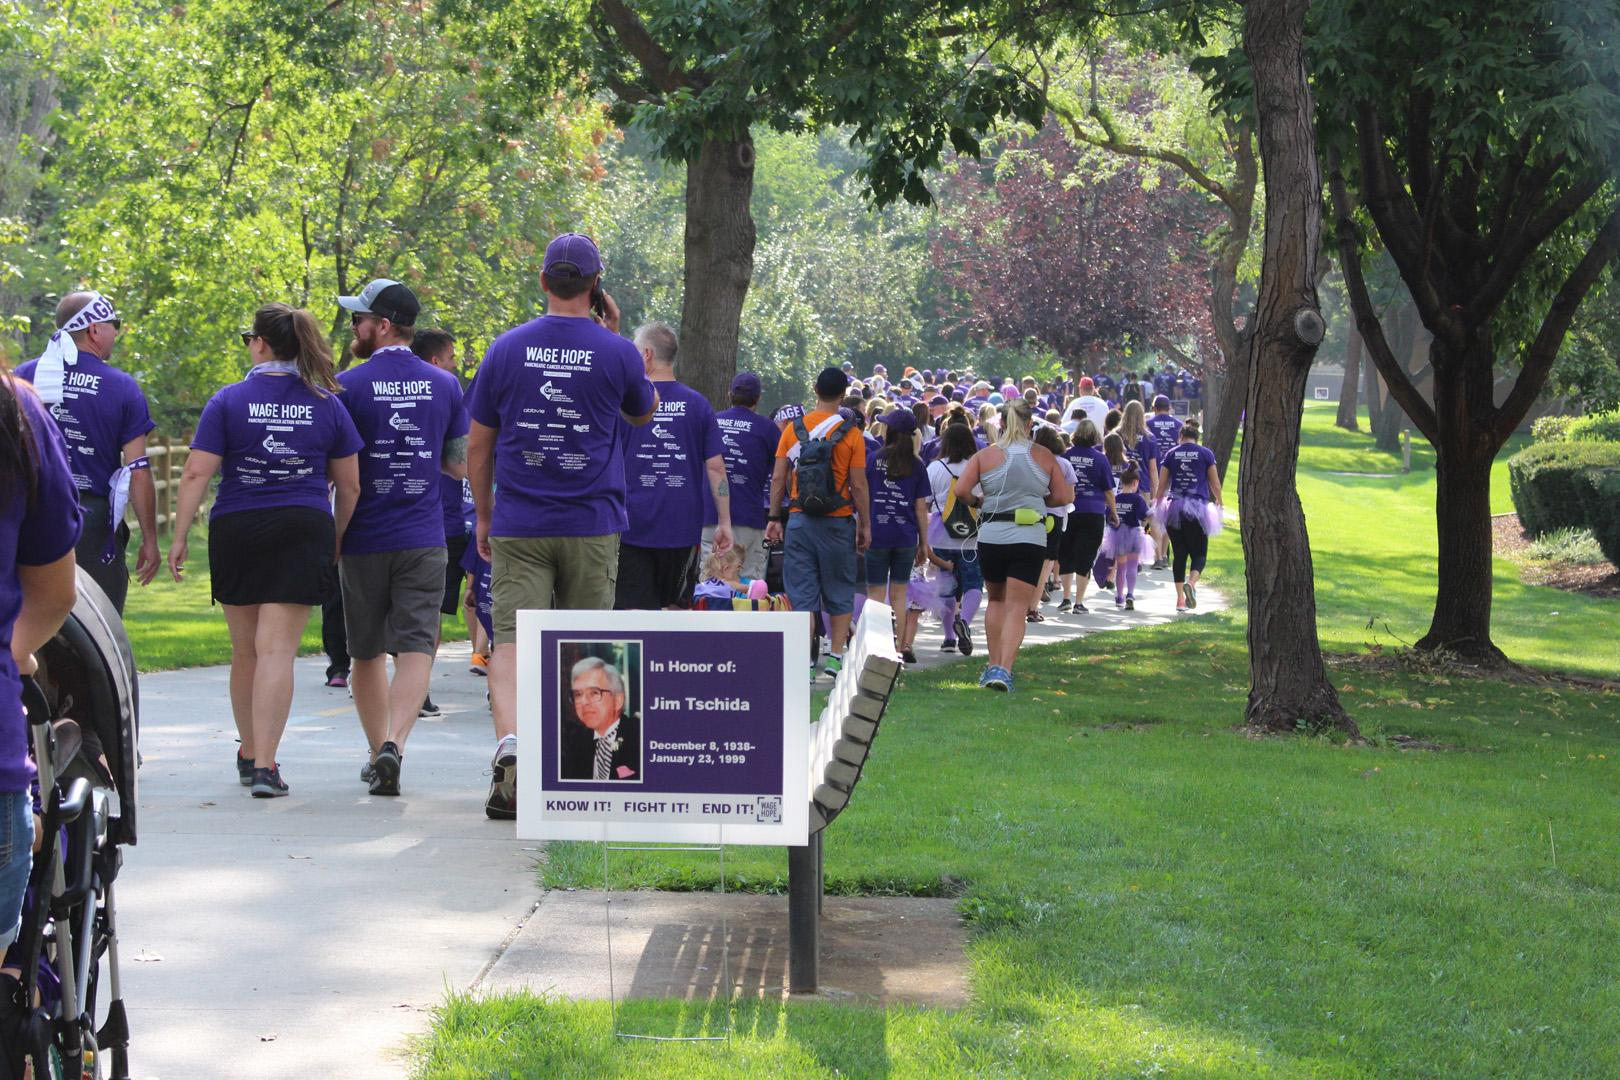 PurpleStride, the walk to end pancreatic cancer, was back in Boise Saturday. The Pancreatic Cancer Action Network say 600 people participated in the event at Ann Morrison Park and it raised more than $64,000.  PanCAN says it is the only organization addressing pancreatic cancer through research, clinical initiatives, patient services and advocacy.  Their urgent mission is to save lives and double survival by 2020. Pancreatic cancer is the third-leading cause of cancer death in the U.S. It has a five year survival of just 9%. More than 145 people are diagnosed each day. The funds raised through PurpleStride events go towards critical research, clinical initiatives and patient services. PurpleStride Boise is one of 55 PurpleStride events taking place across the country this year. These community events have raised over $87 million for the cause from since 2008. (Photo Credit: Pancreatic Cancer Action Network)